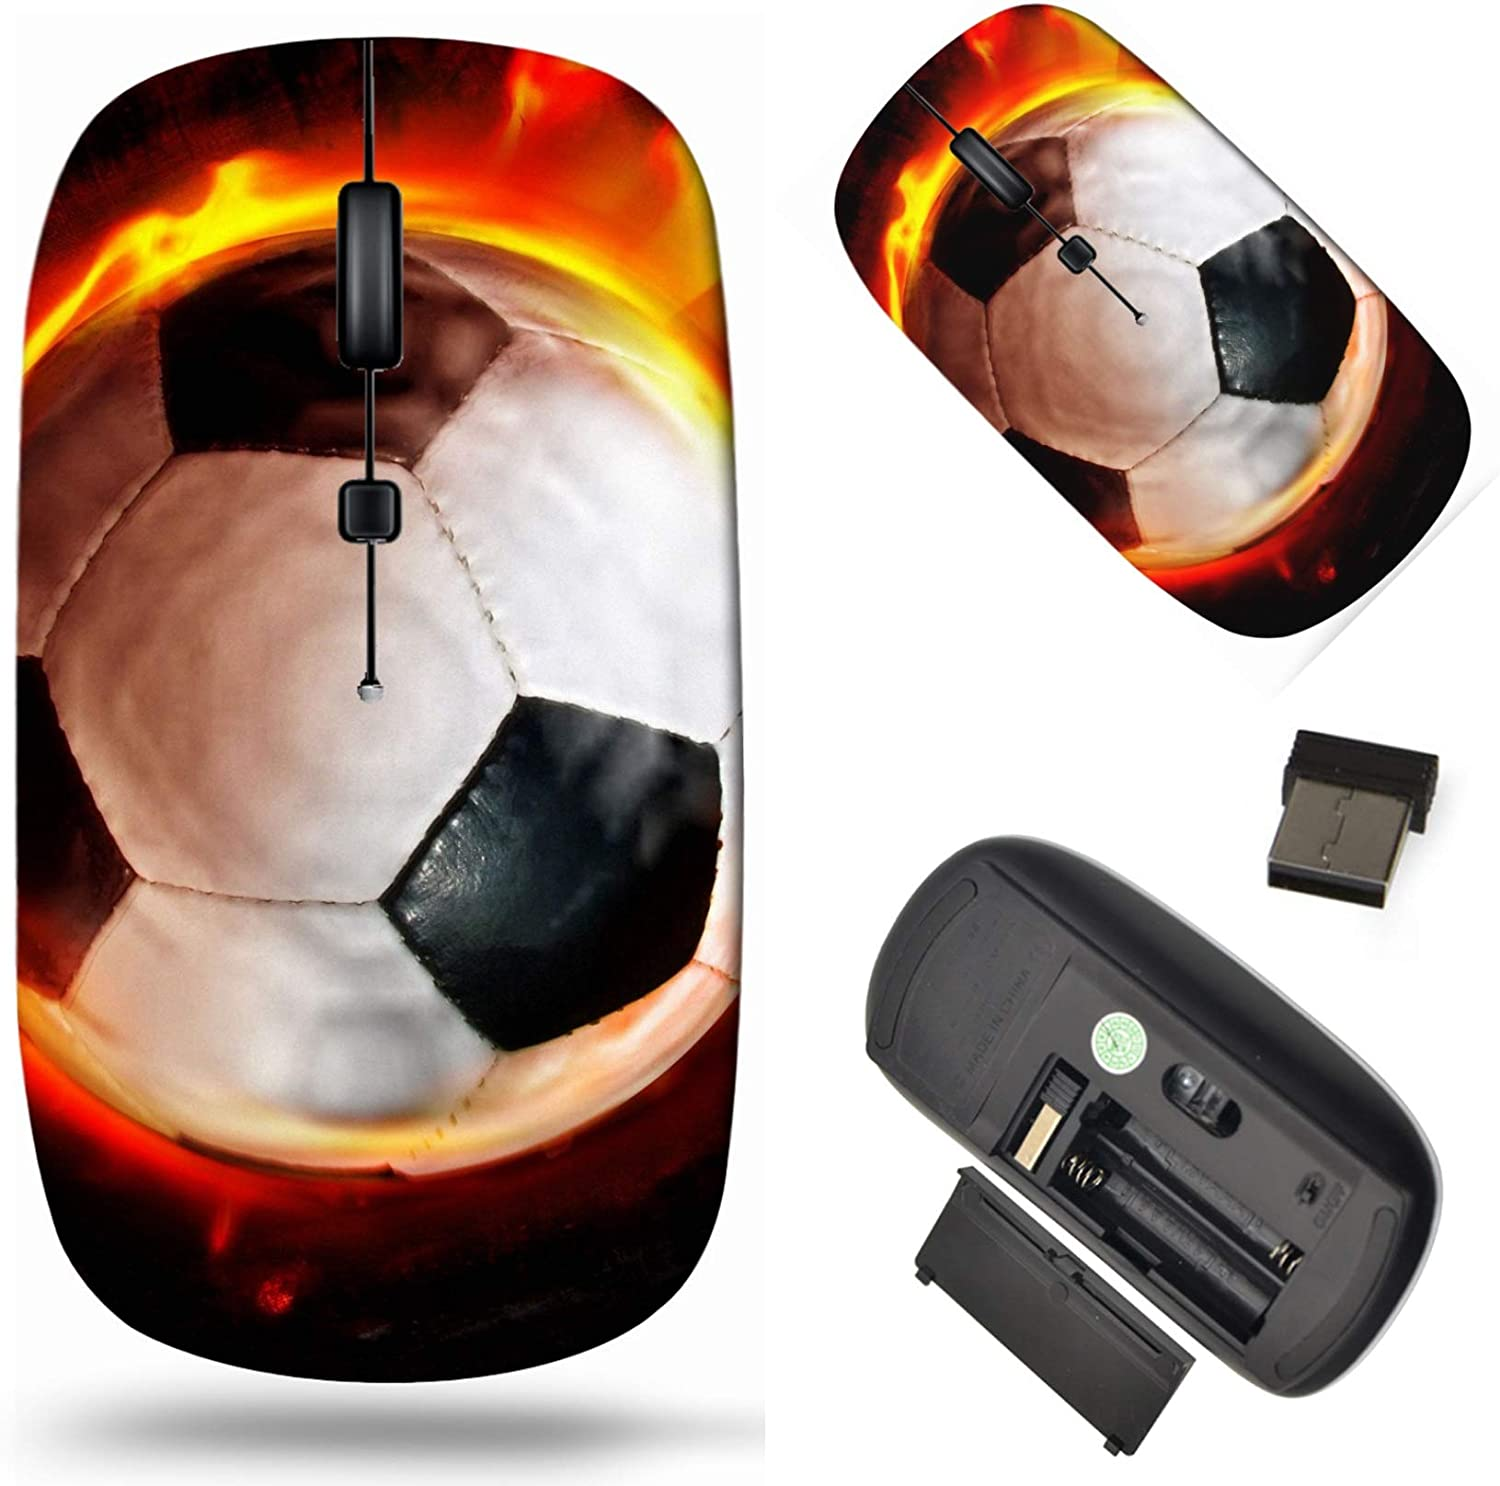 Wholesale Wireless Computer Mouse 2.4G with USB Phoenix Mall Laptop Receiver Cor